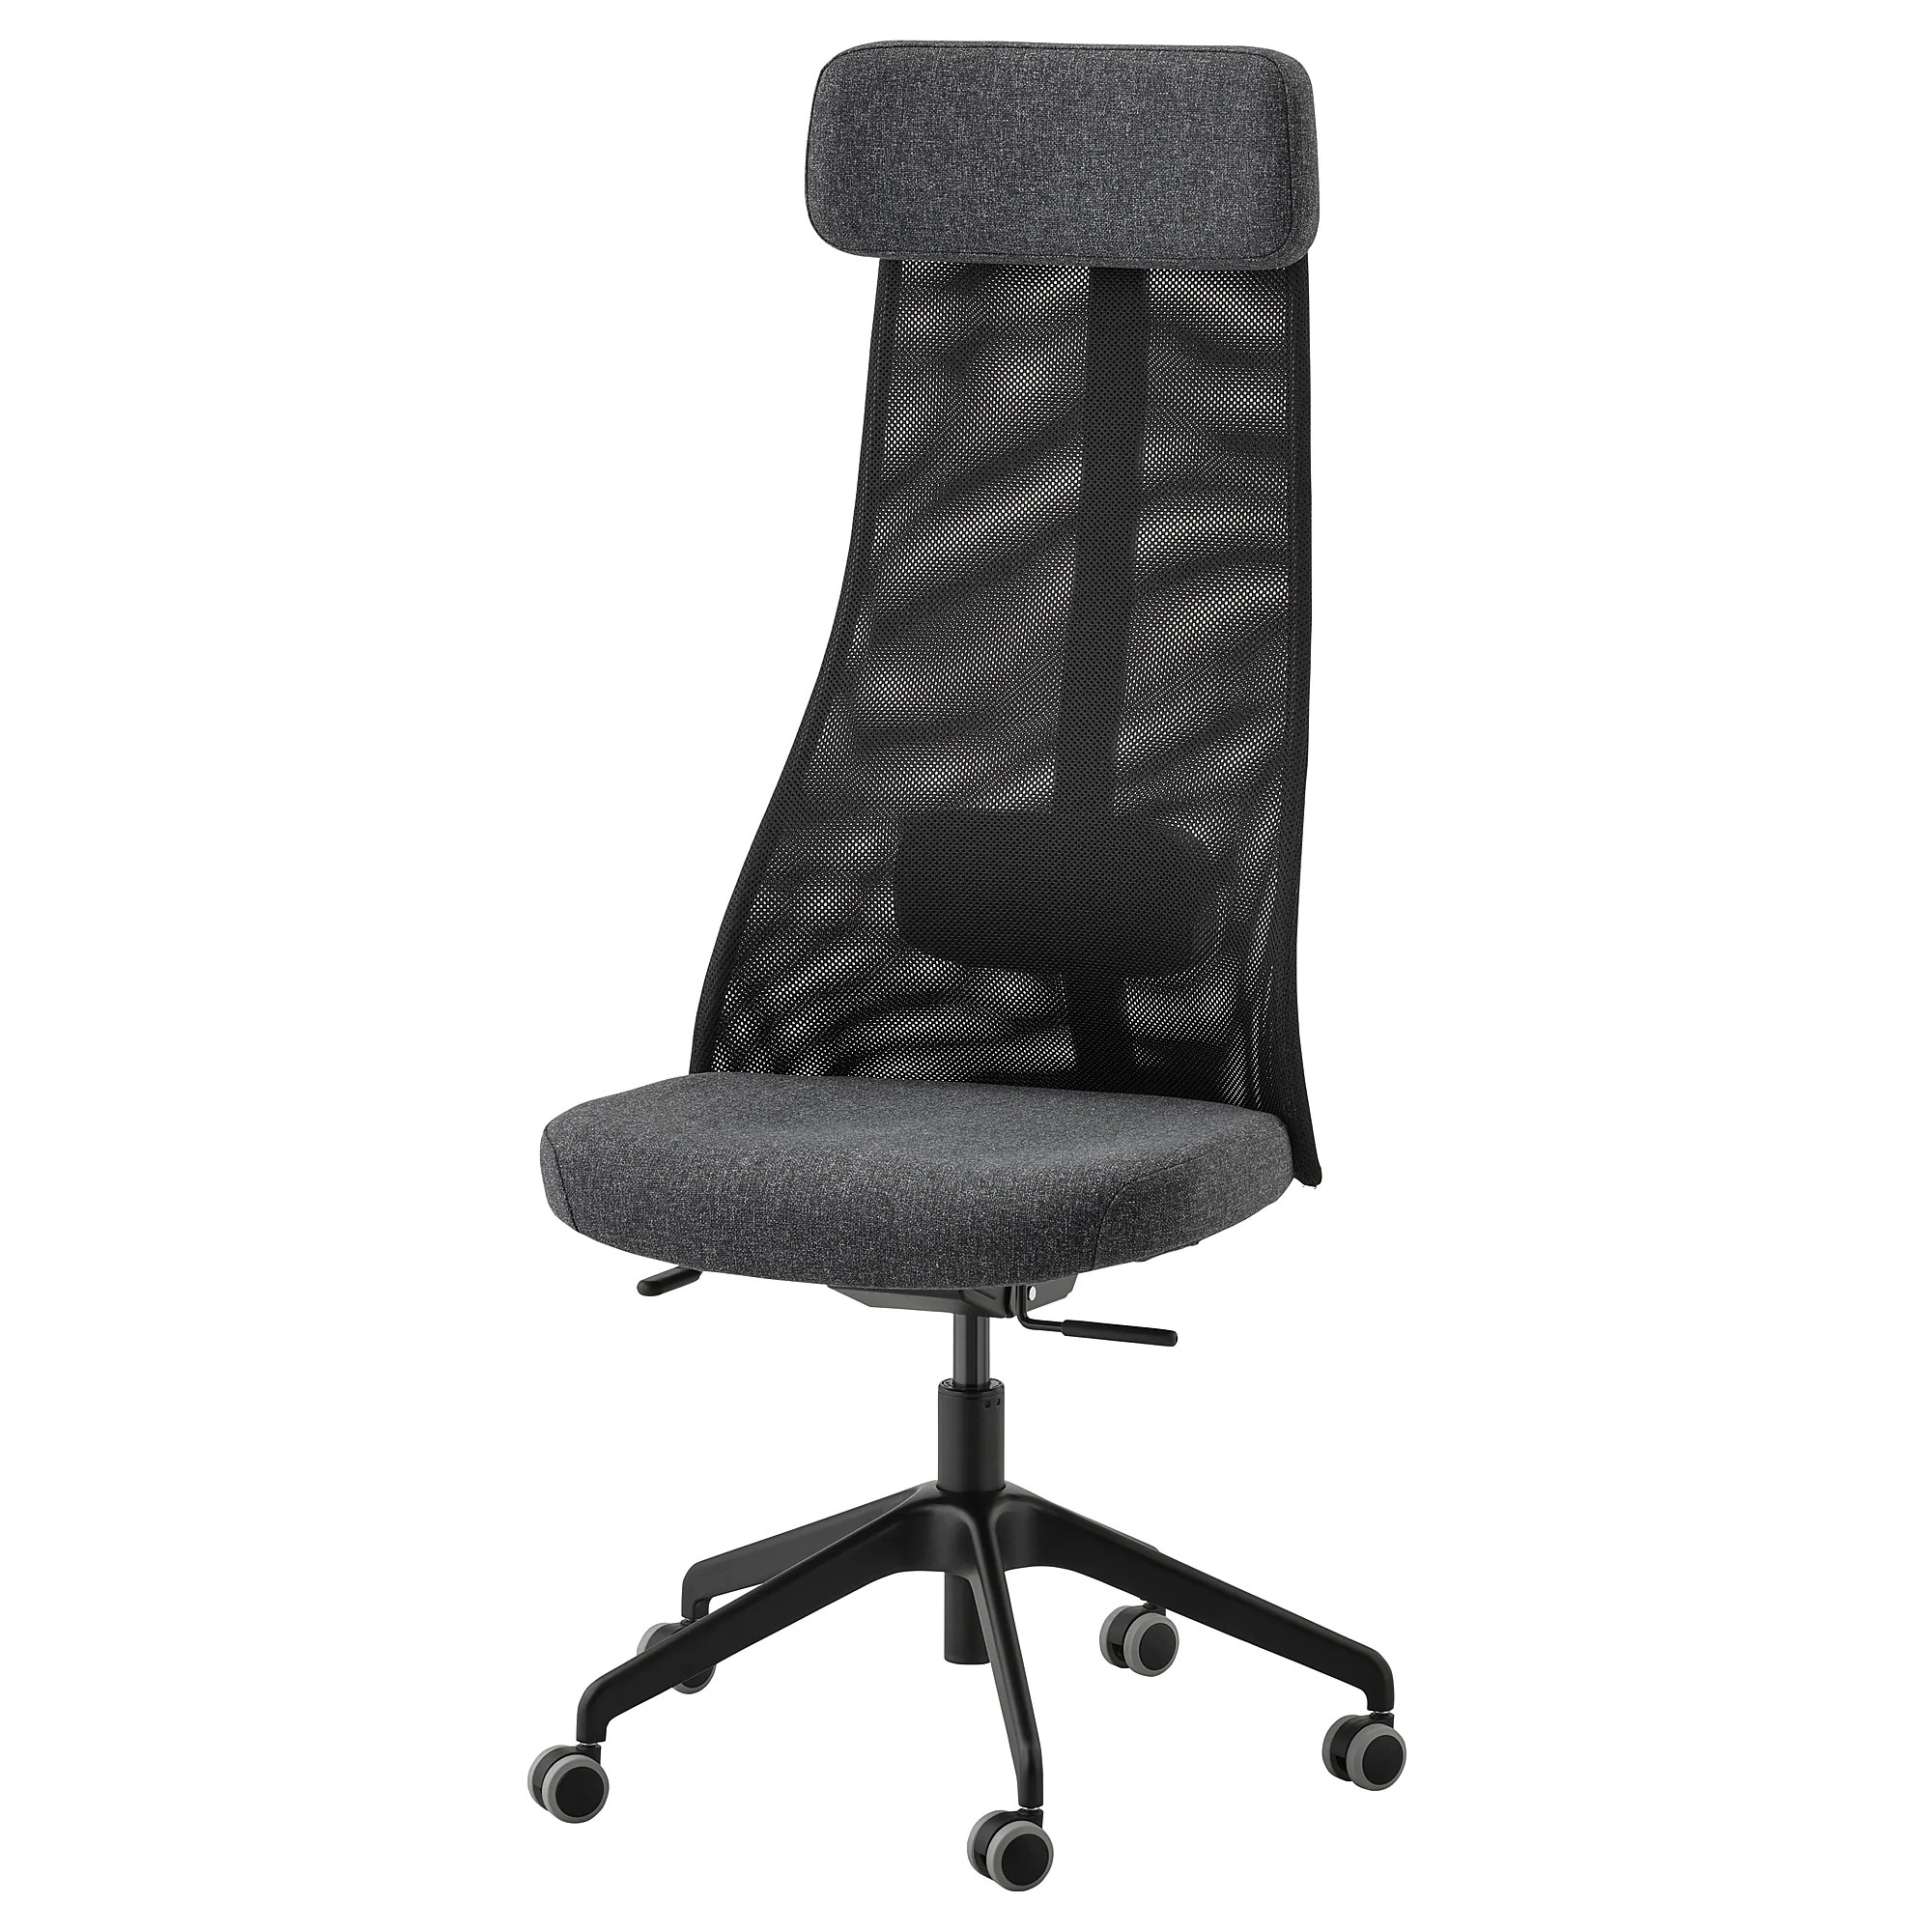 How To Adjust Office Chair JÄrvfjÄllet Office Chair Glose Black